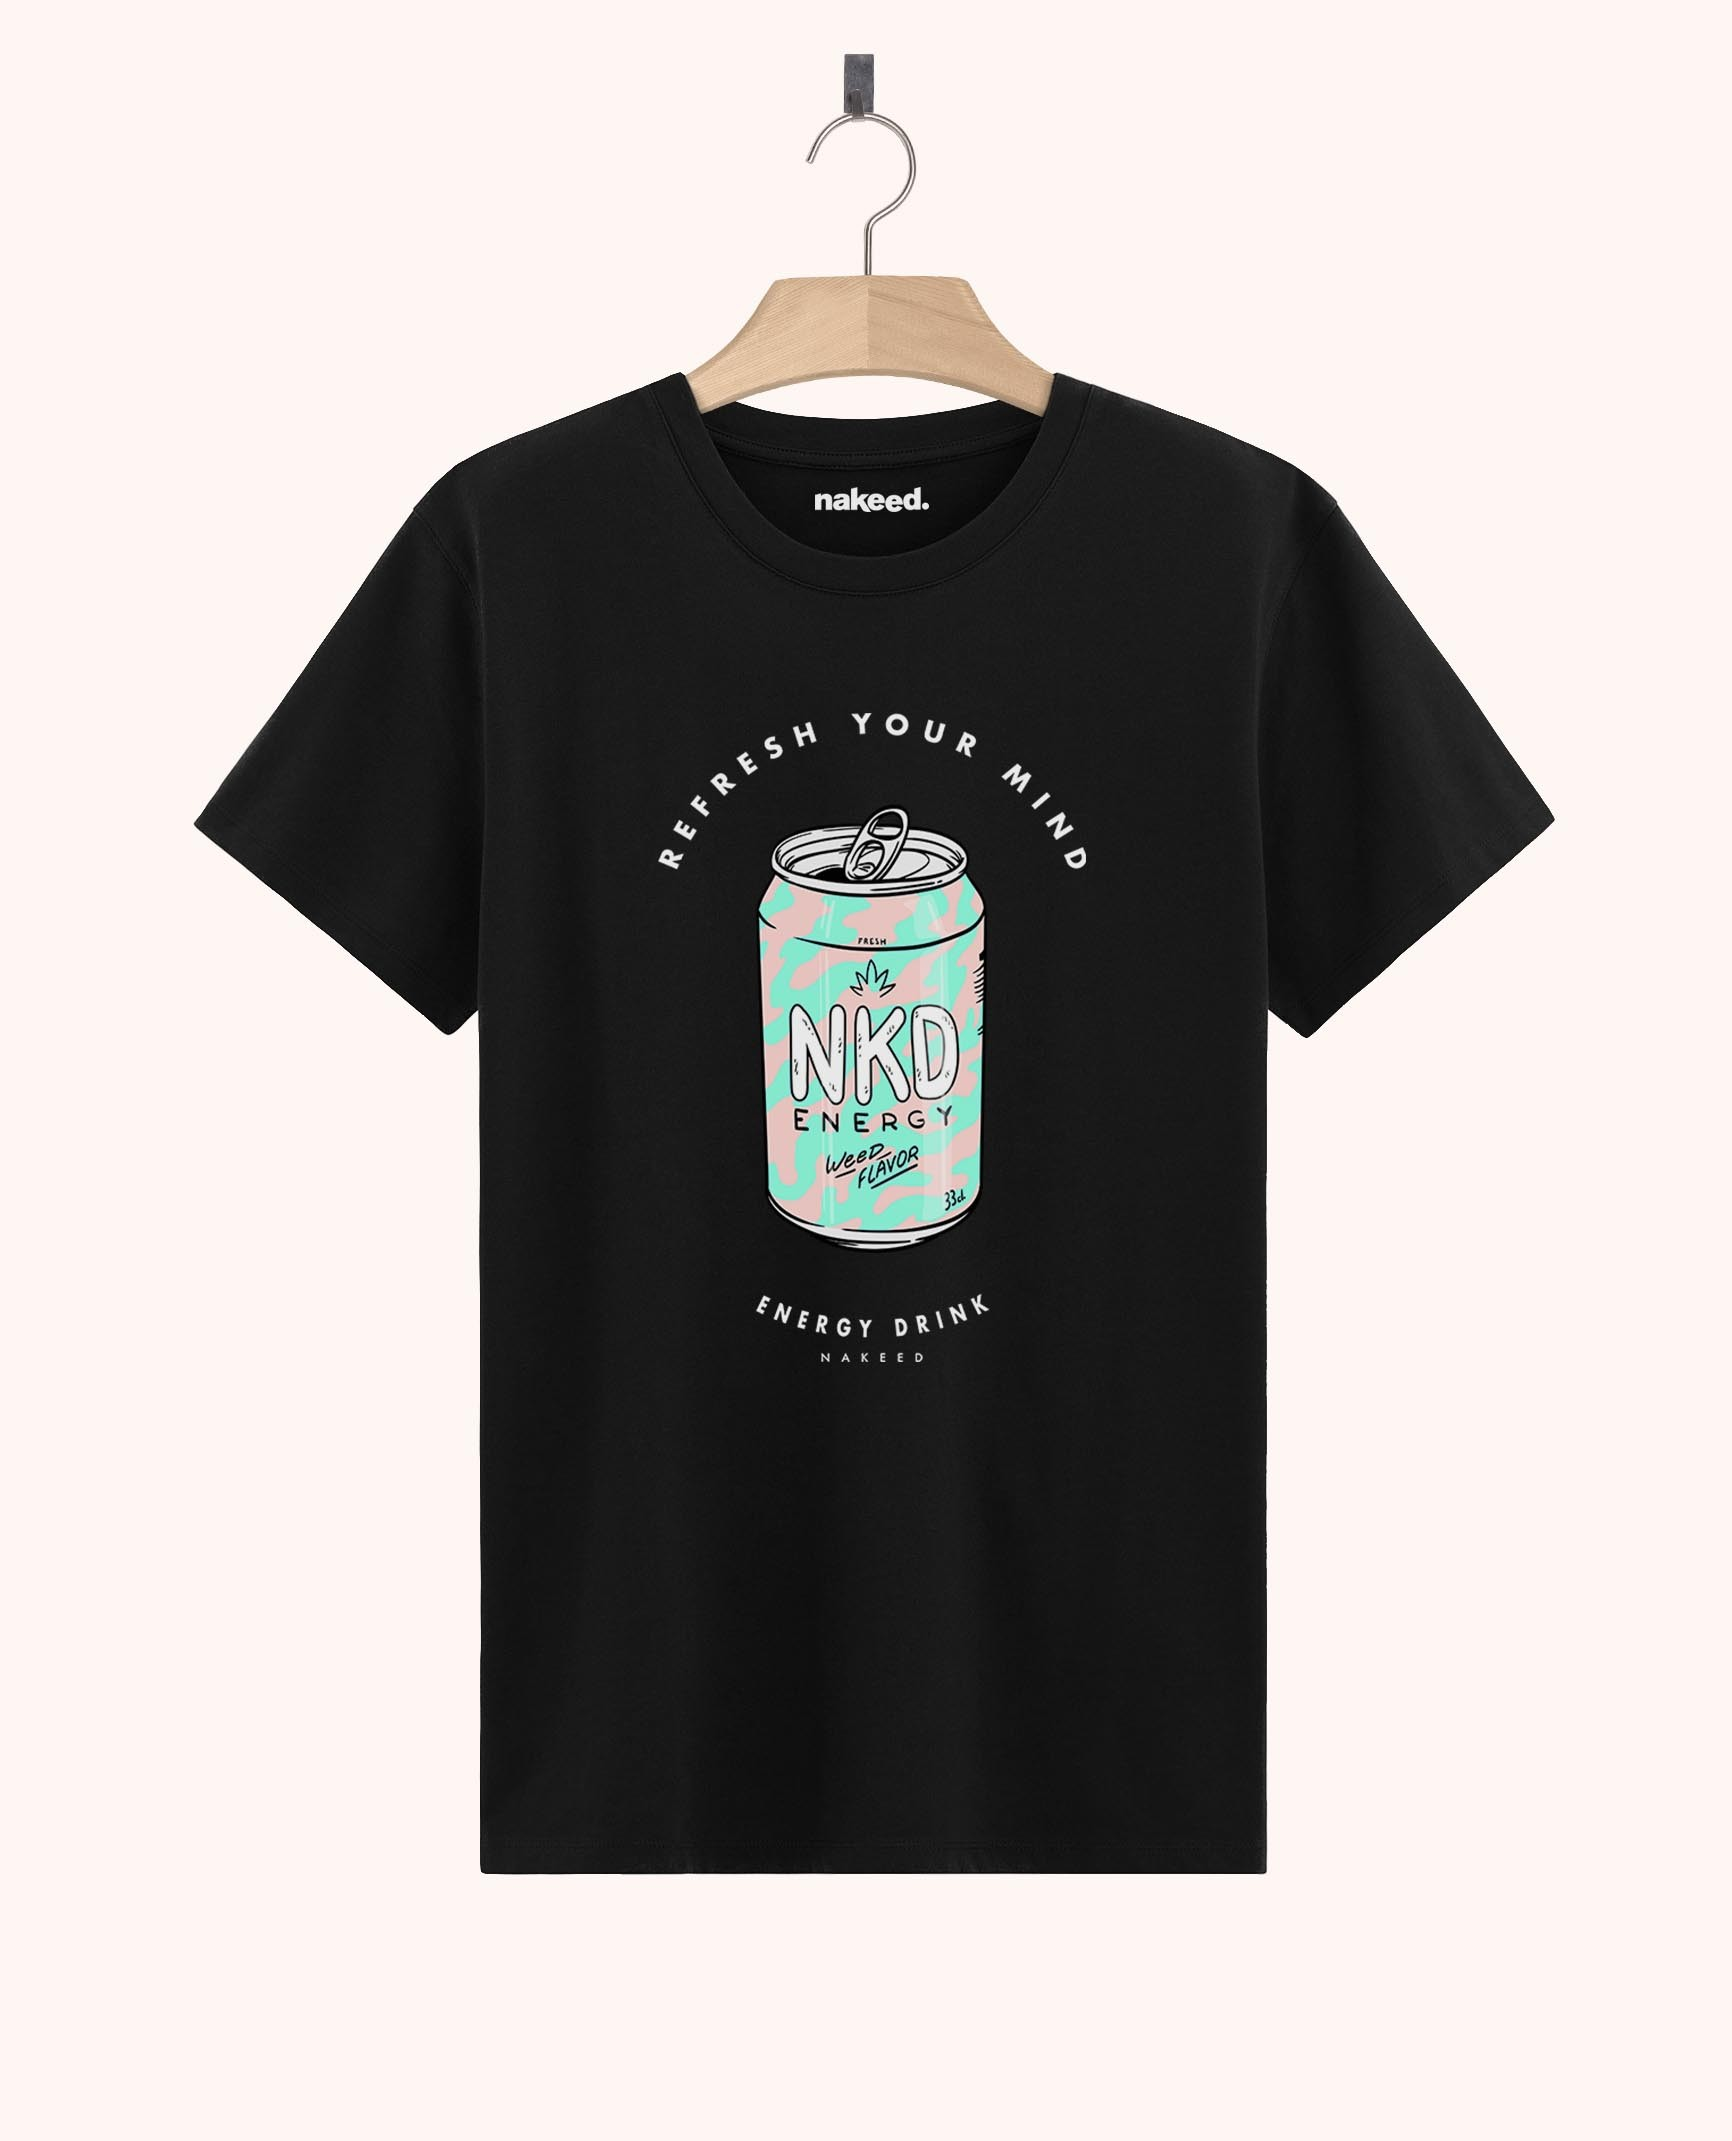 Teeshirt Nakeed Energy Drink